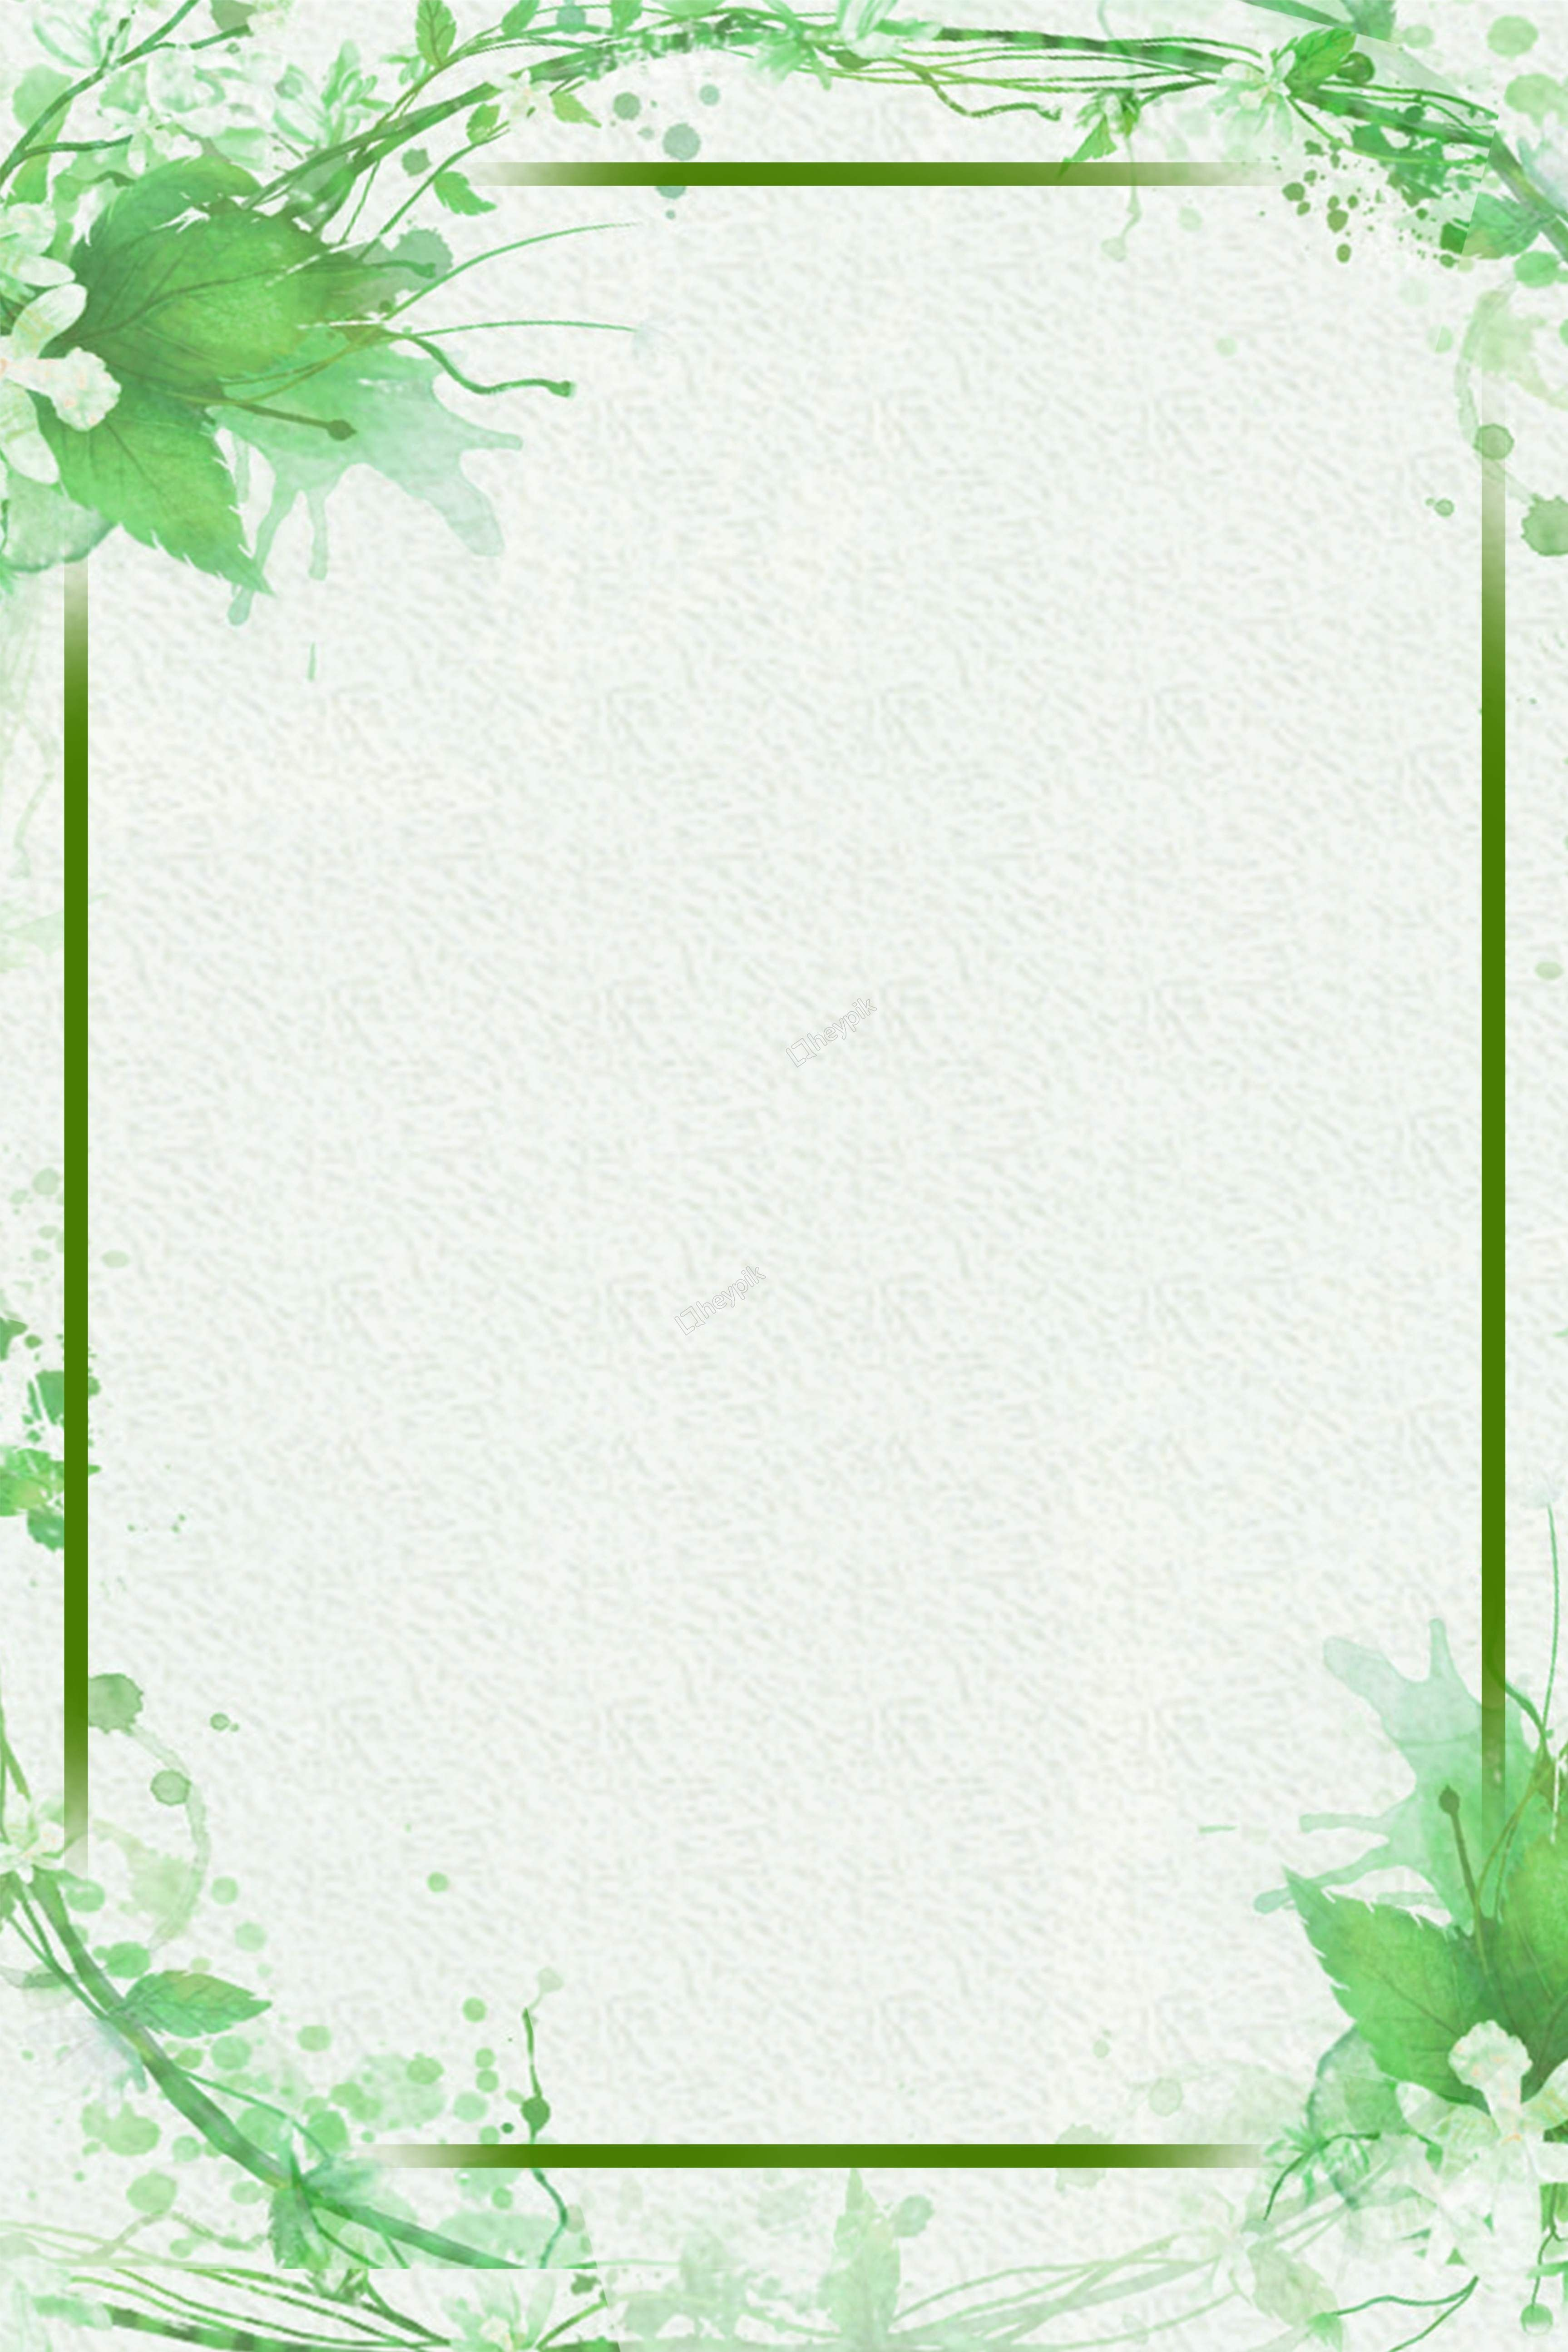 Simple Green Leaves Decorative Border Background Vector In